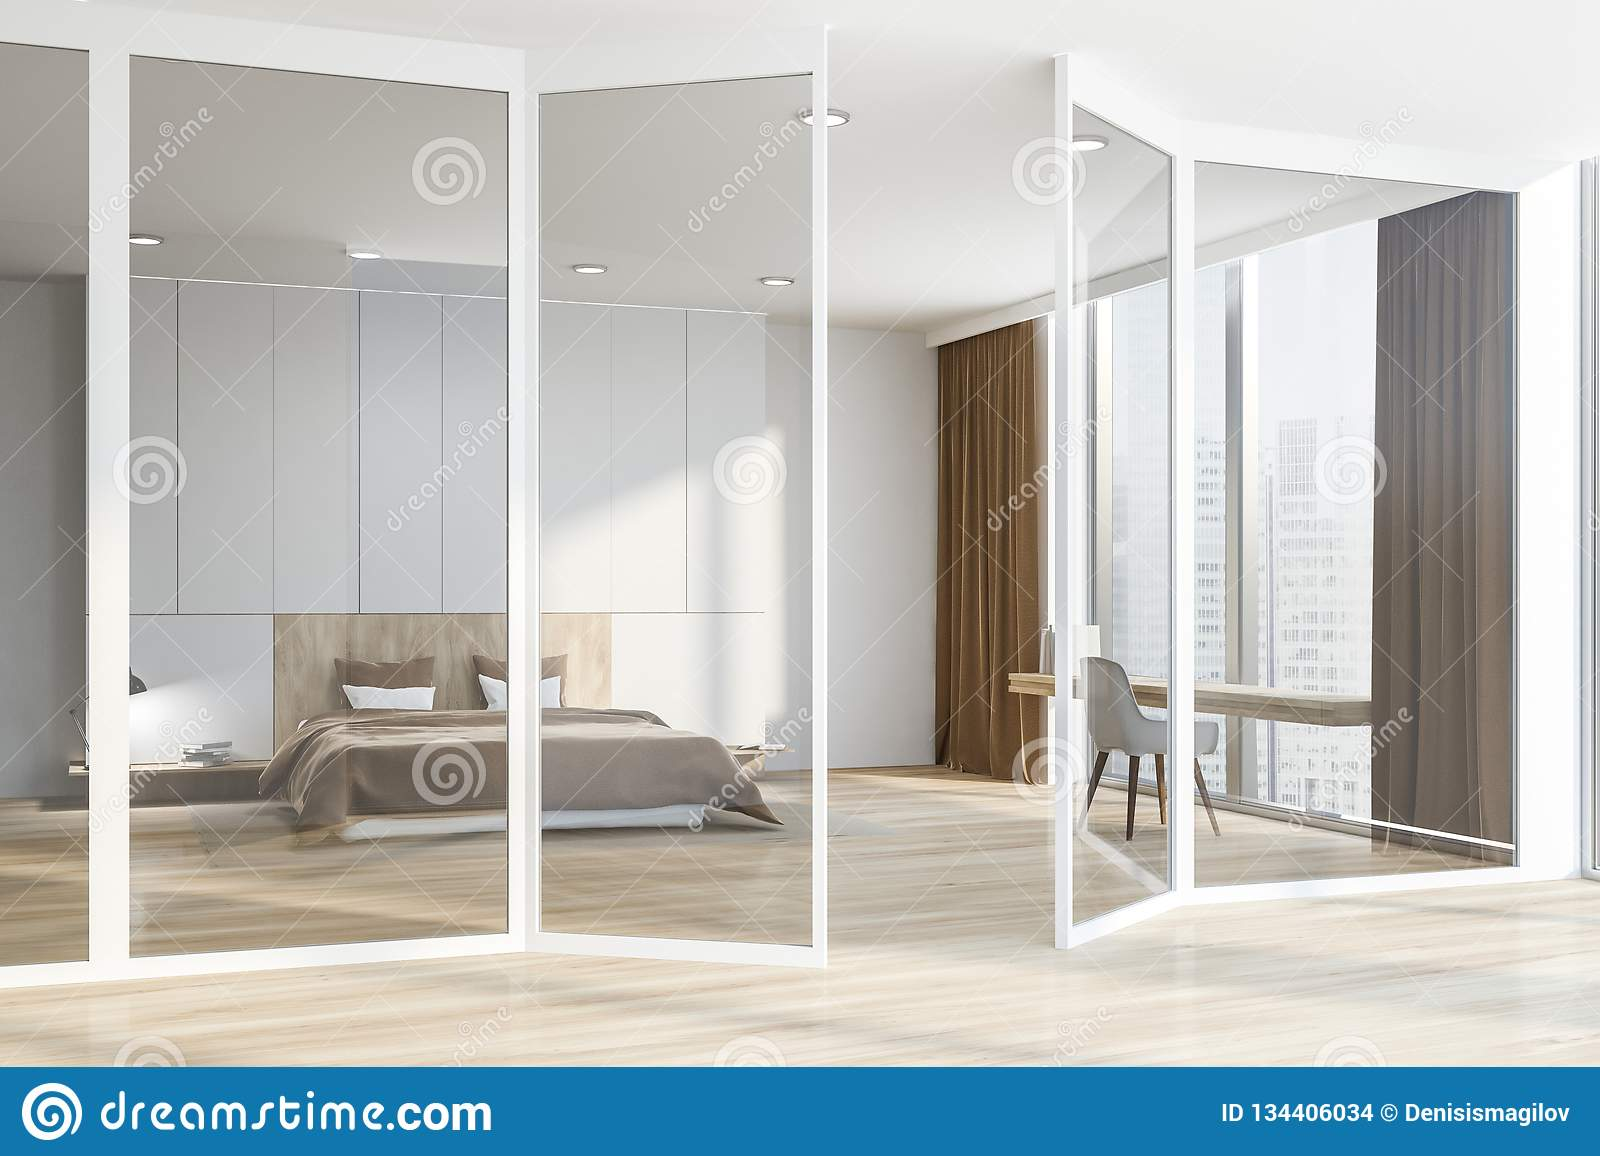 Master Bedroom And Home Office Glass Doors Stock Illustration Illustration Of Bedroom Hotel 134406034